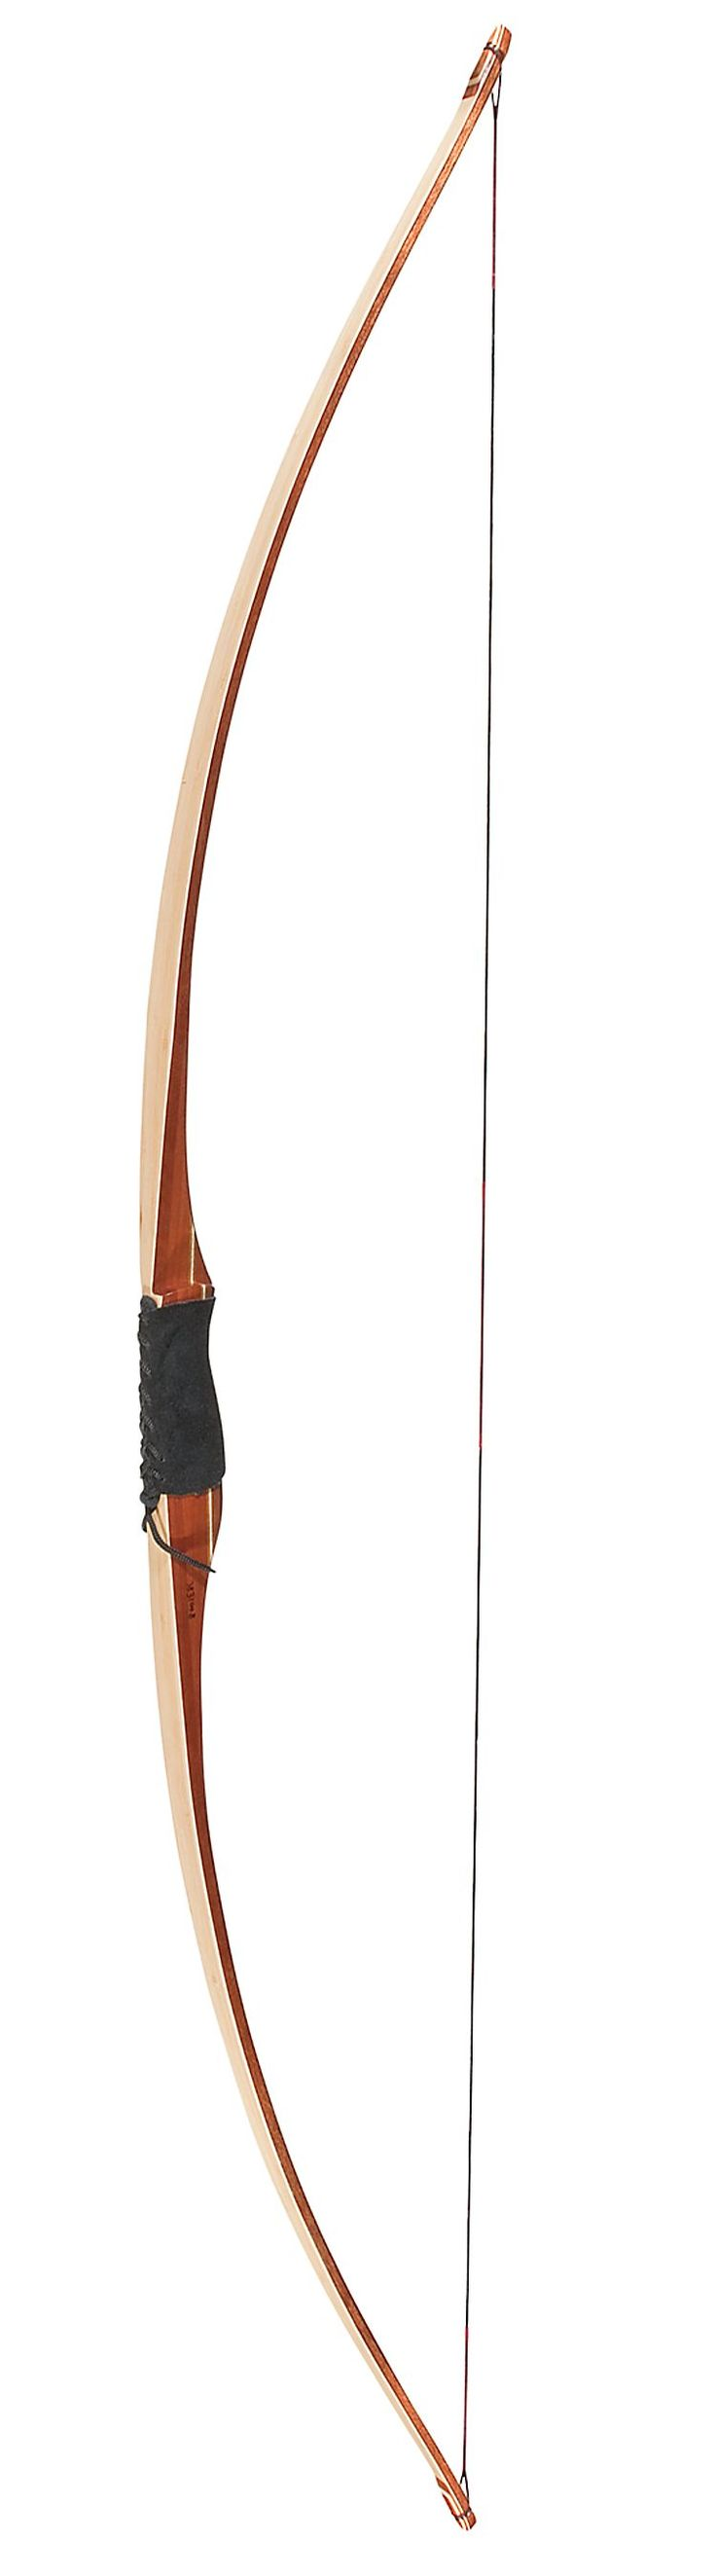 PSE® Archery Sequoia™ Longbow | Bass Pro Shops